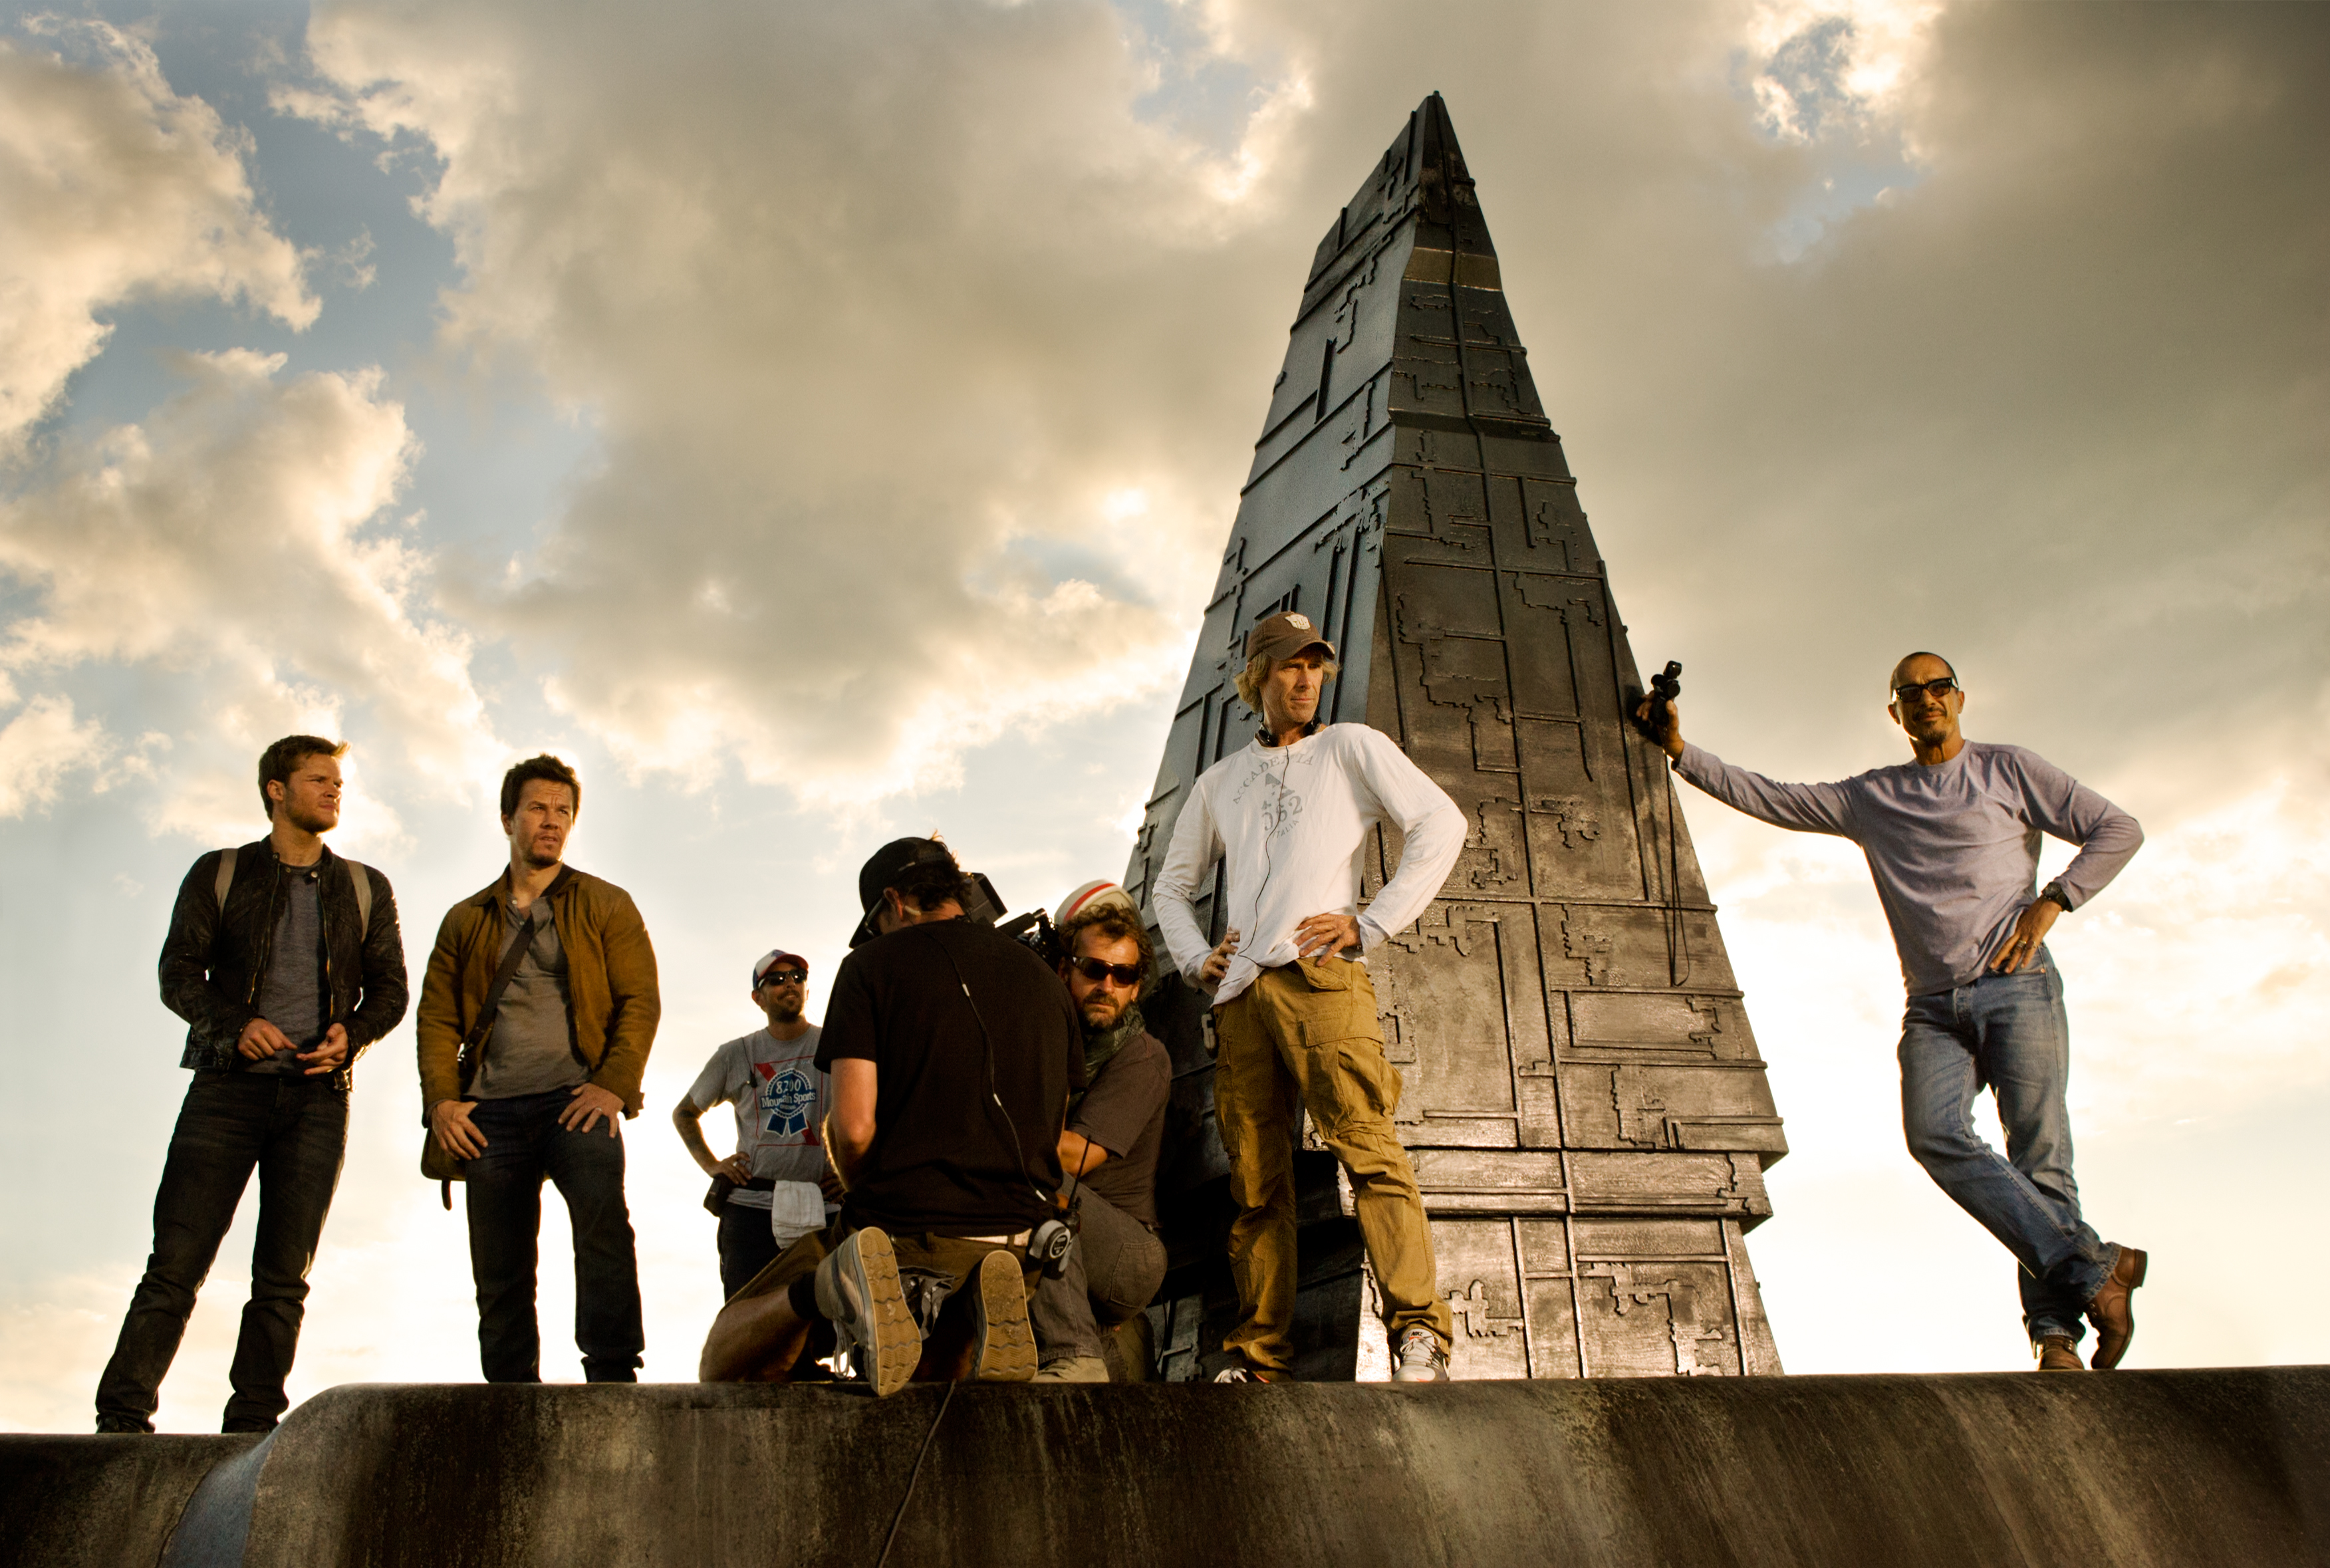 transformers 4' reveals first official photo; dinobot scene shooting